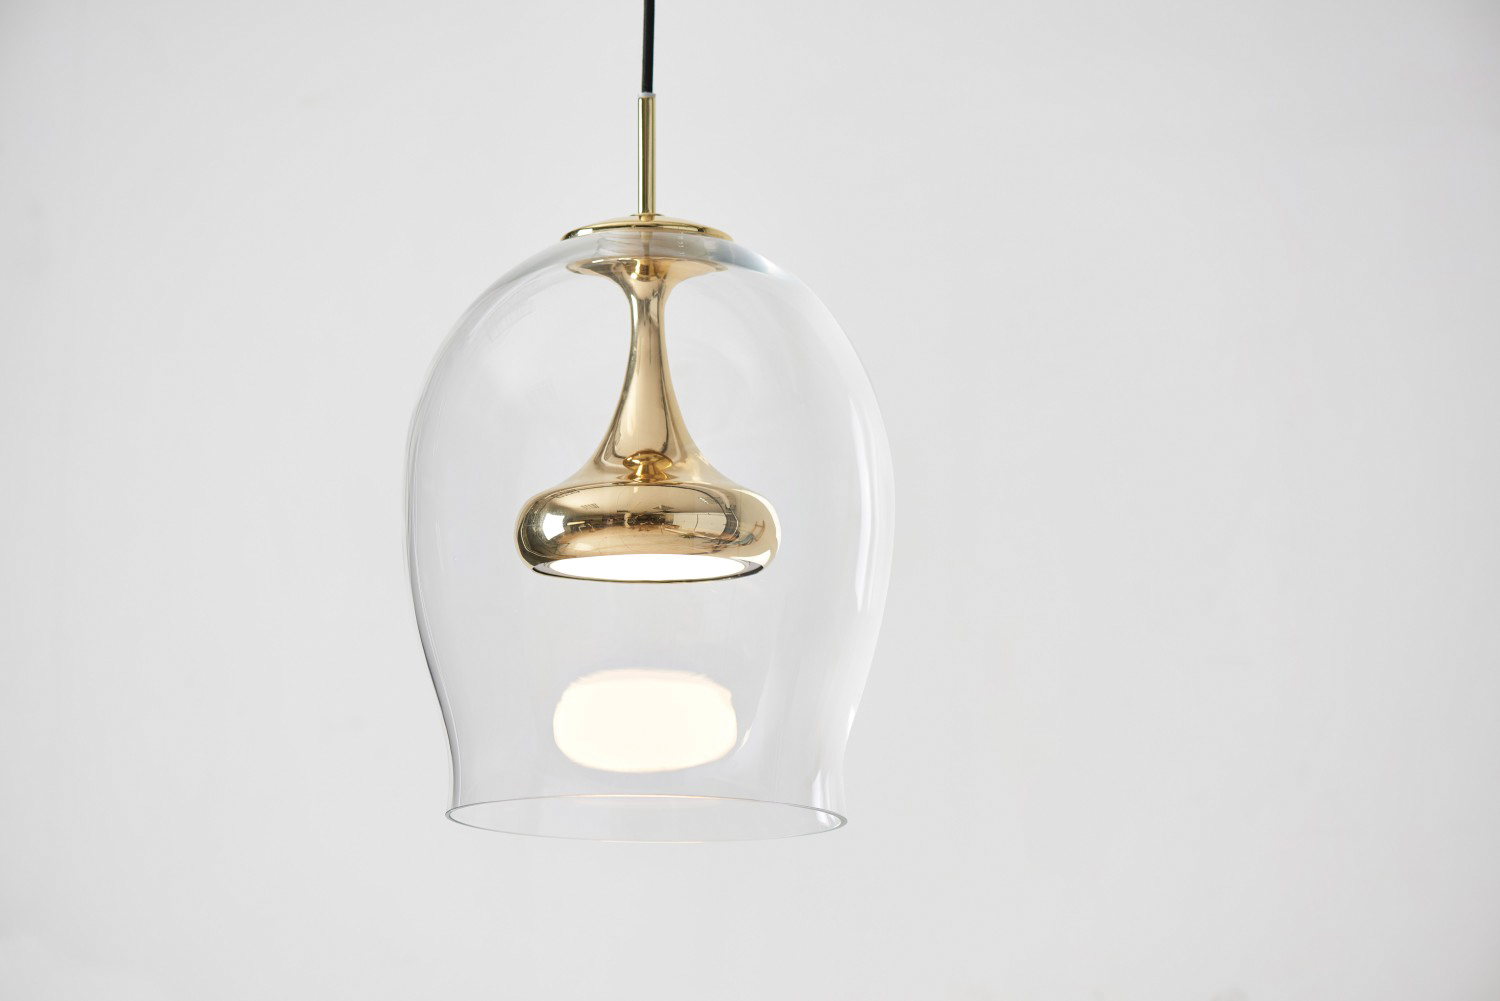 Luxe luminaires: beautiful lighting to enhance your space